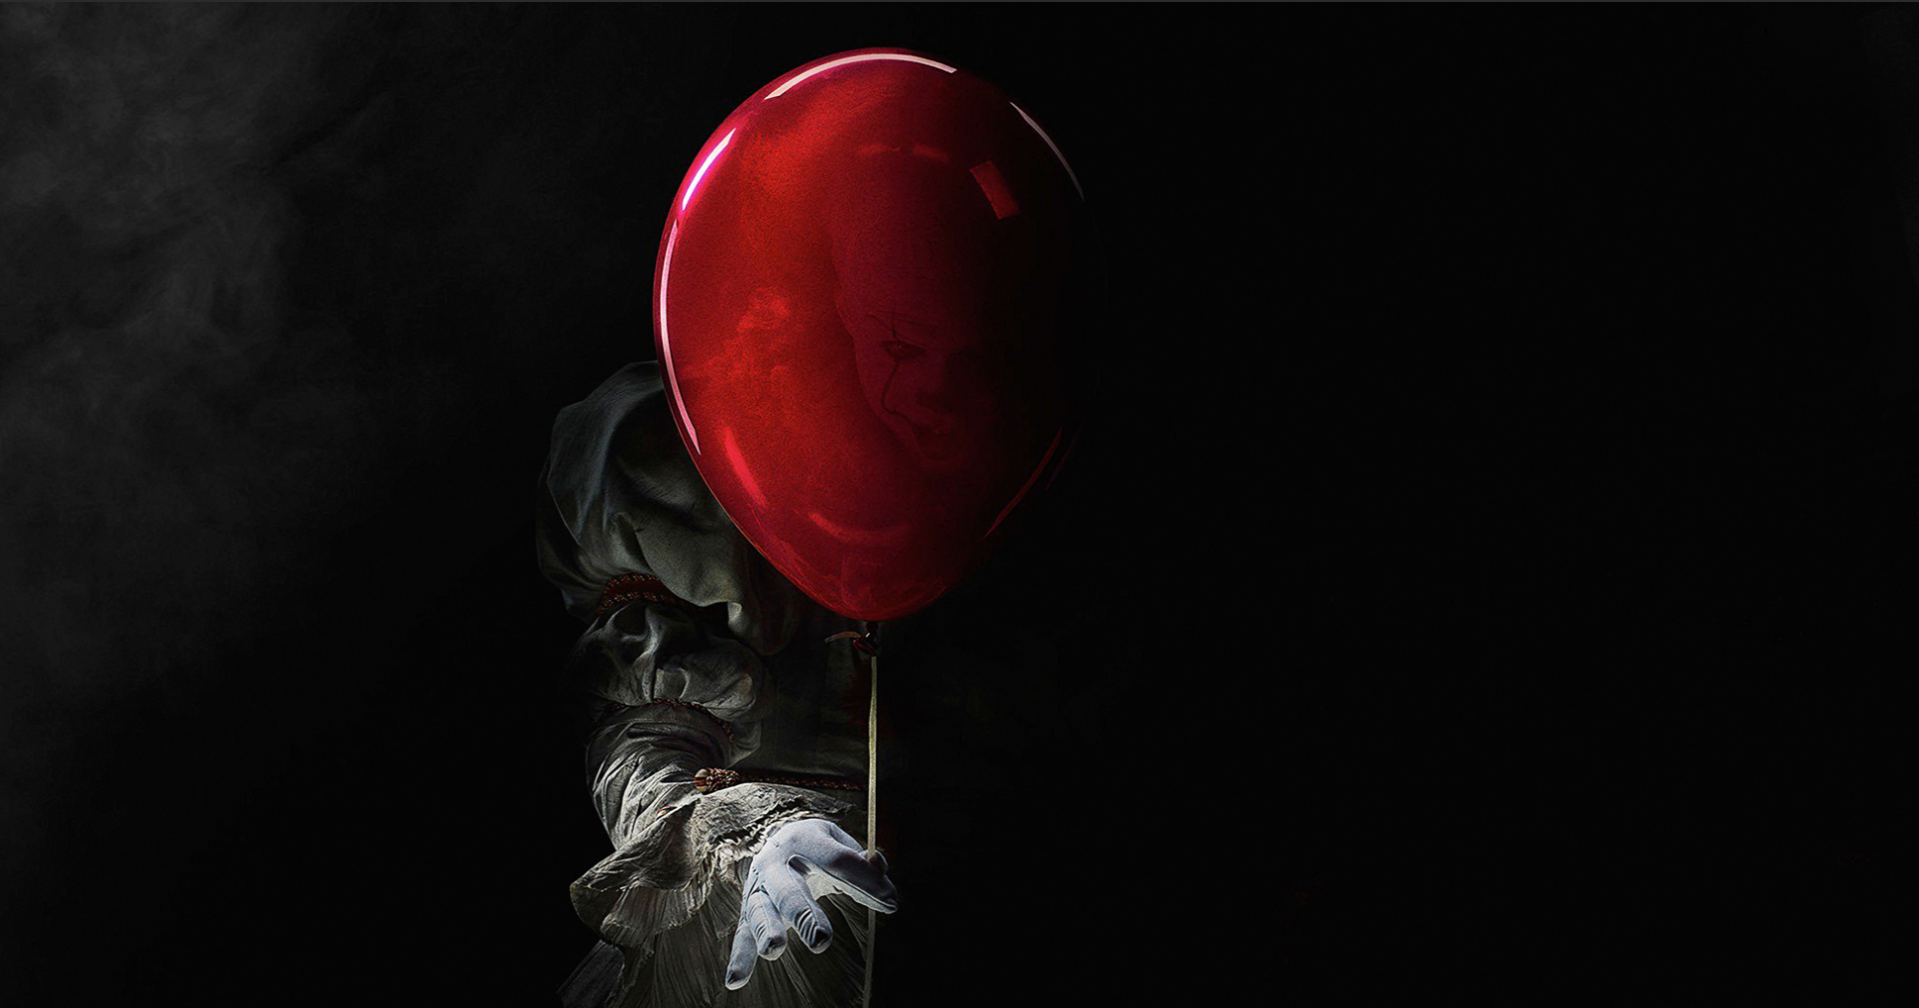 Movie - It (2017)  Scary Clown Pennywise (It) Wallpaper